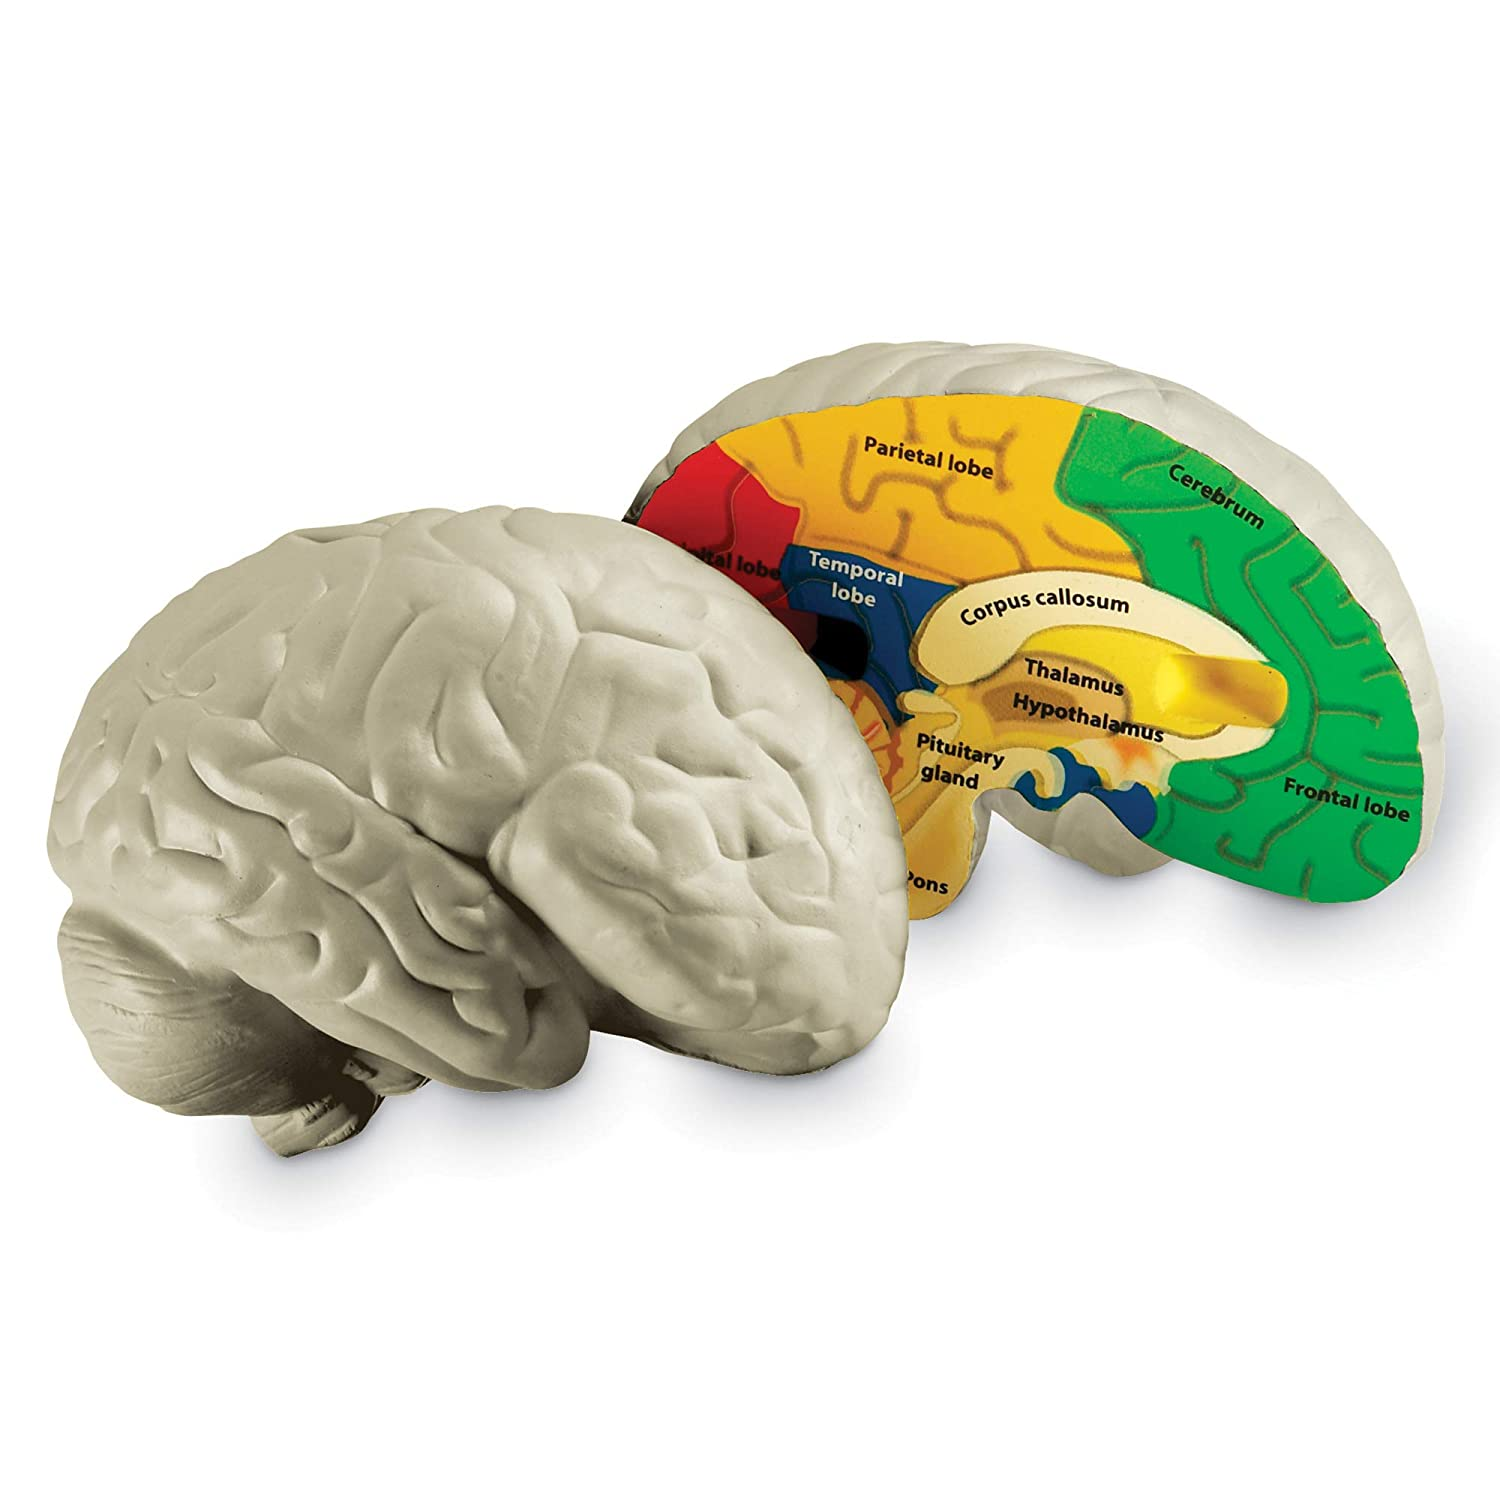 Learning Resources Soft Foam Cross Section Brain Model Amazoncouk Toys Games